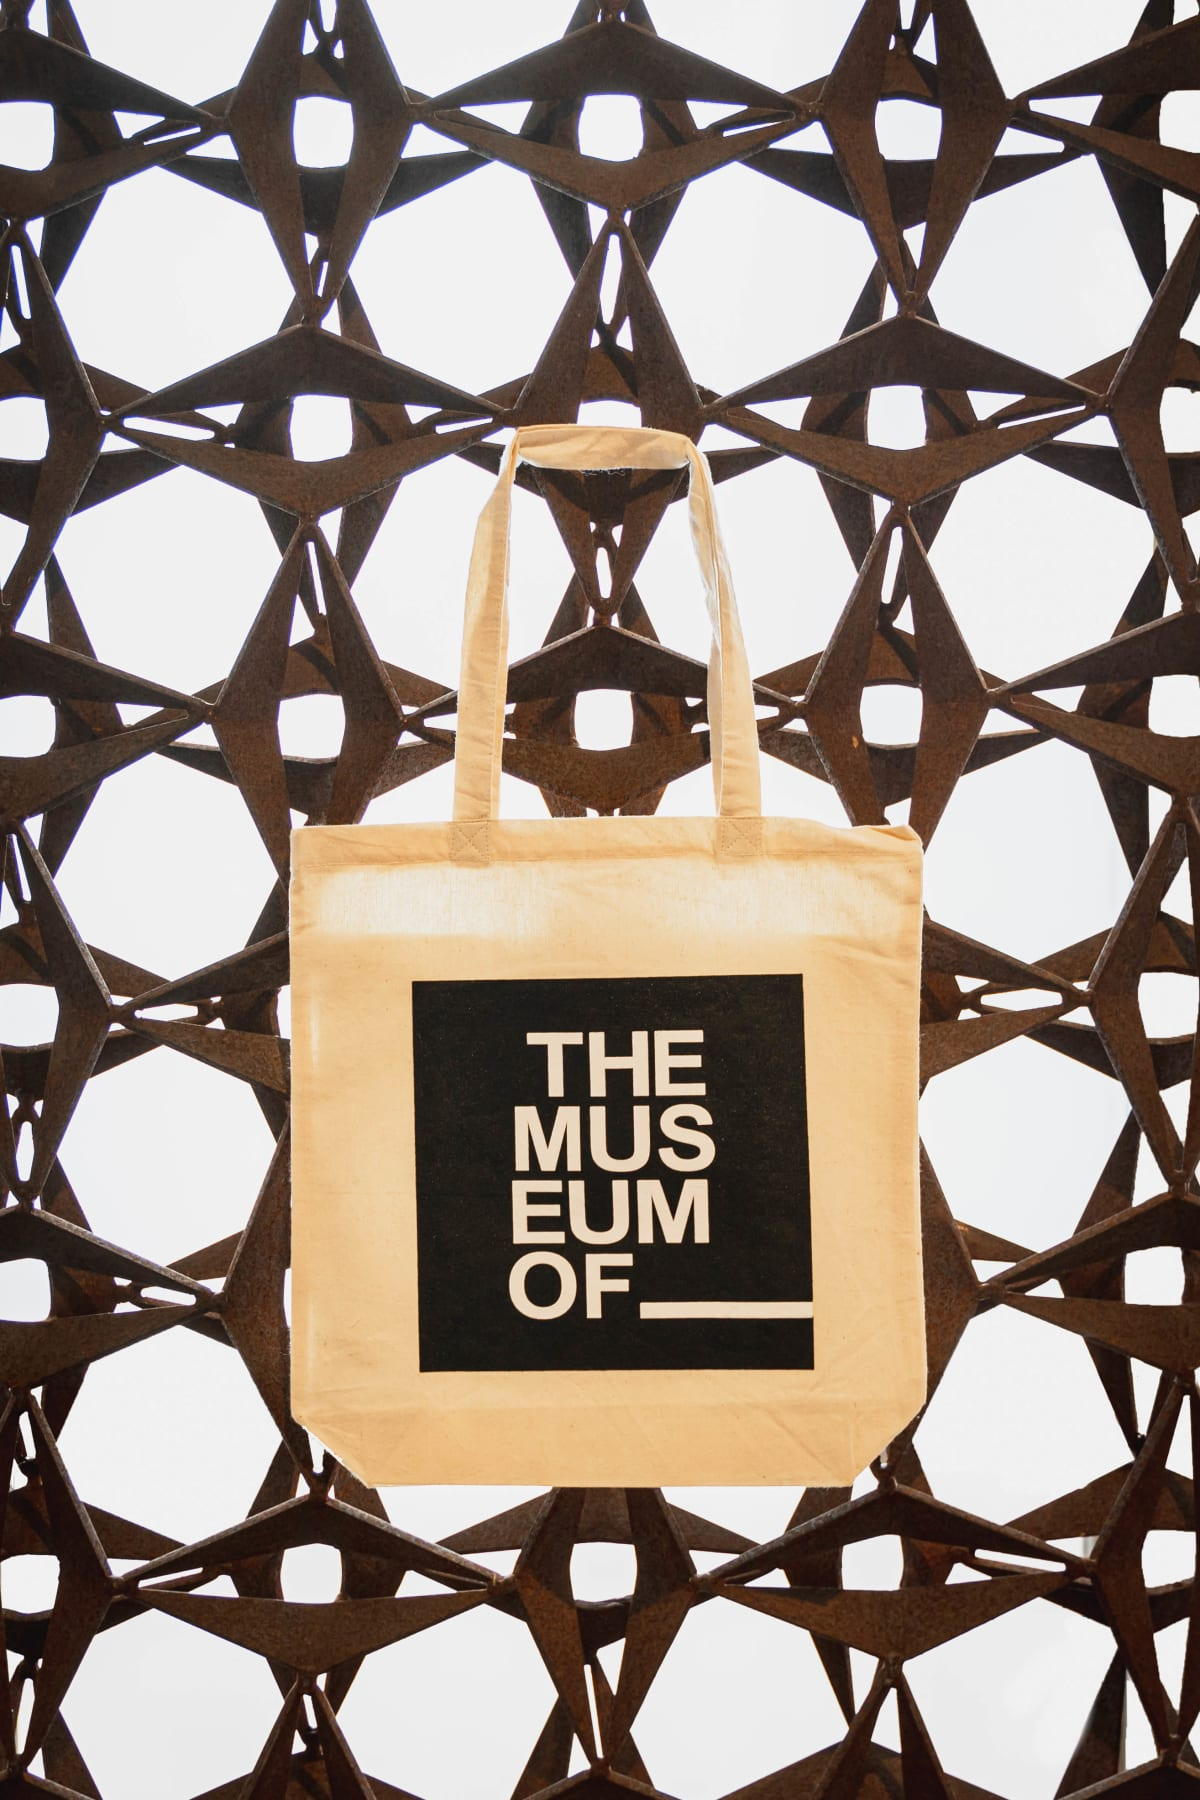 The Museum Of __ Tote Bags